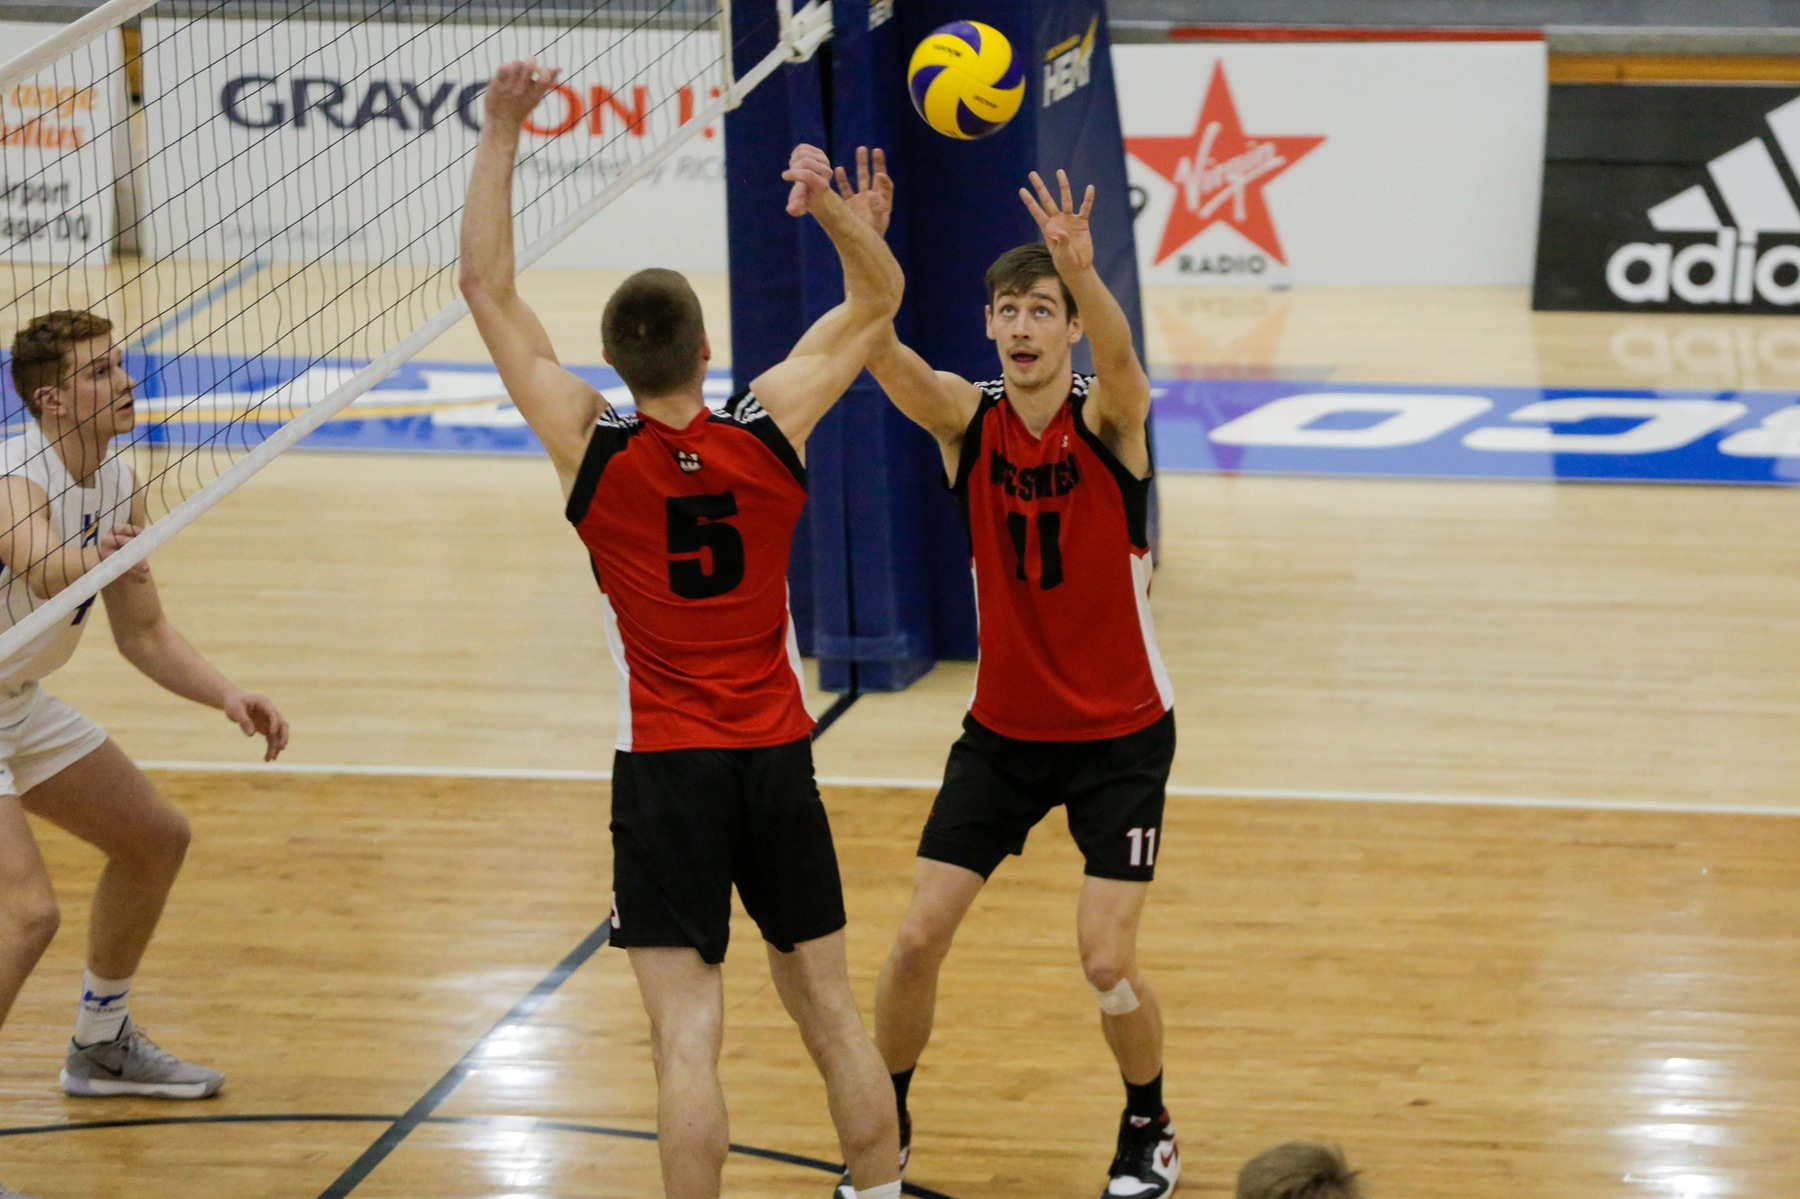 Mikael Clegg sets the ball while Keegan Teetaert (5) runs a middle attack during men's volleyball action against the UBCO Heat in Kelowna, B.C., on Saturday, Jan. 11, 2020. (UBCO Athletics photo)